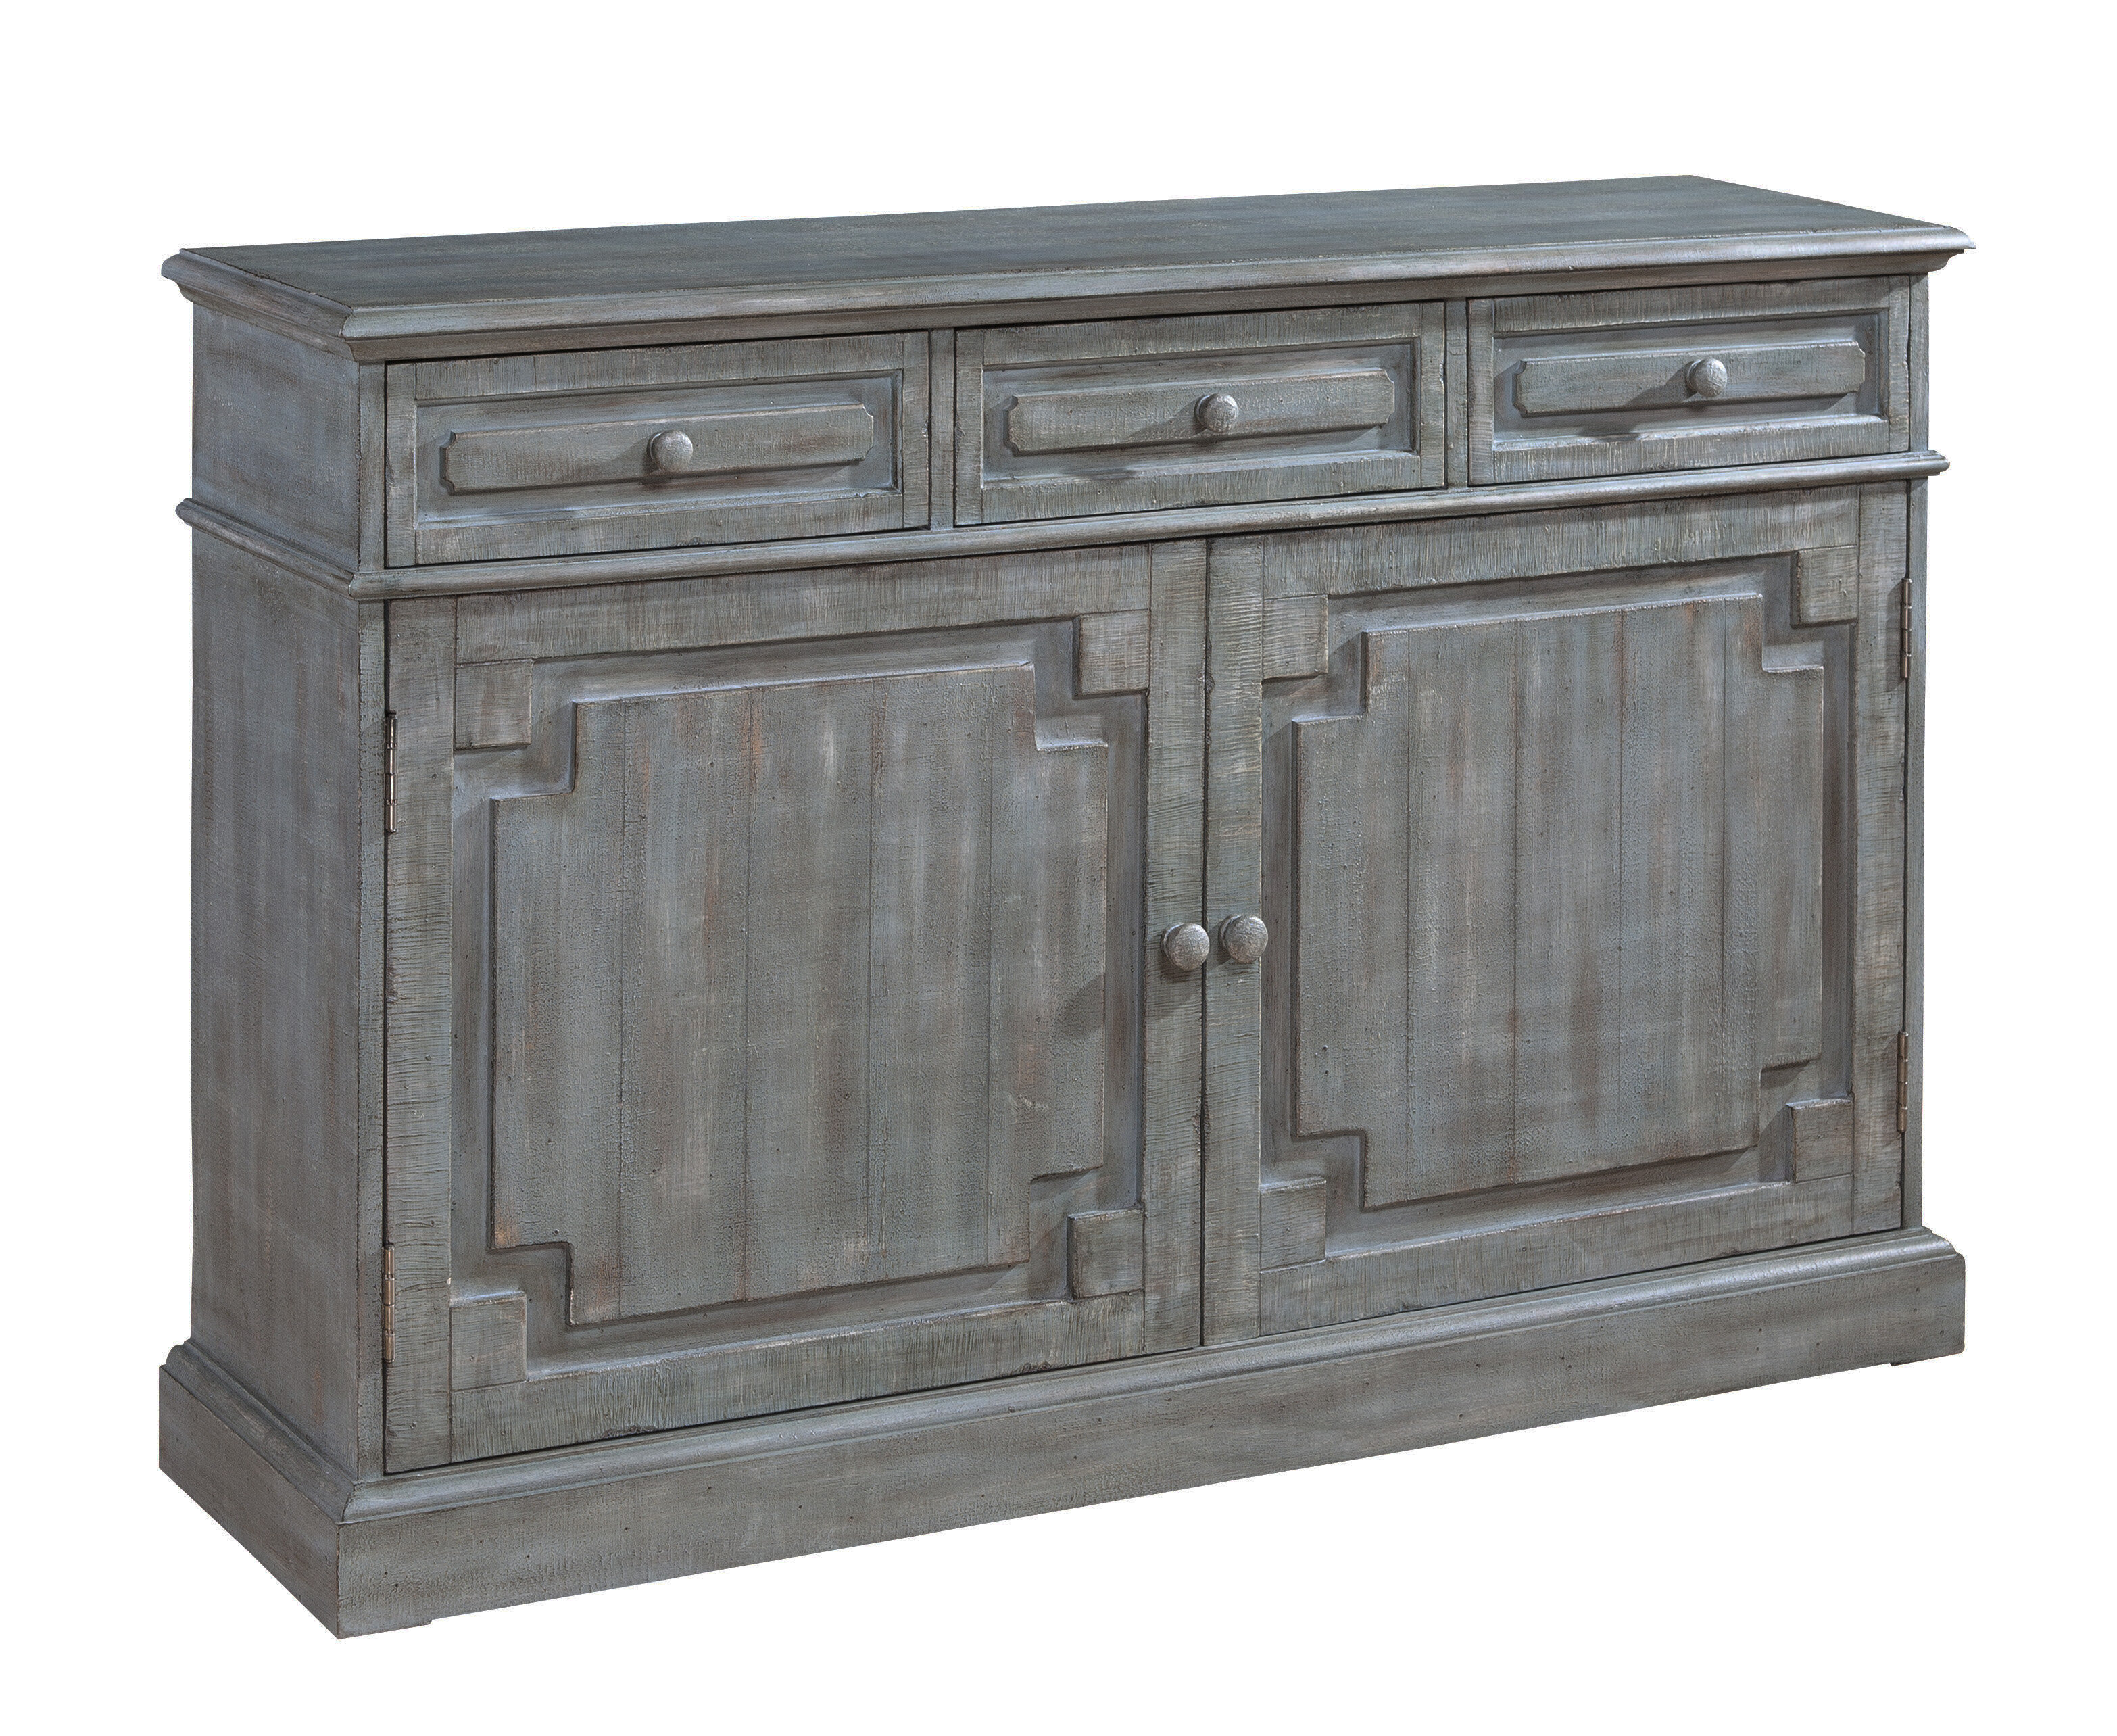 Mistana Adelbert Credenza Pertaining To Caines Credenzas (View 23 of 30)